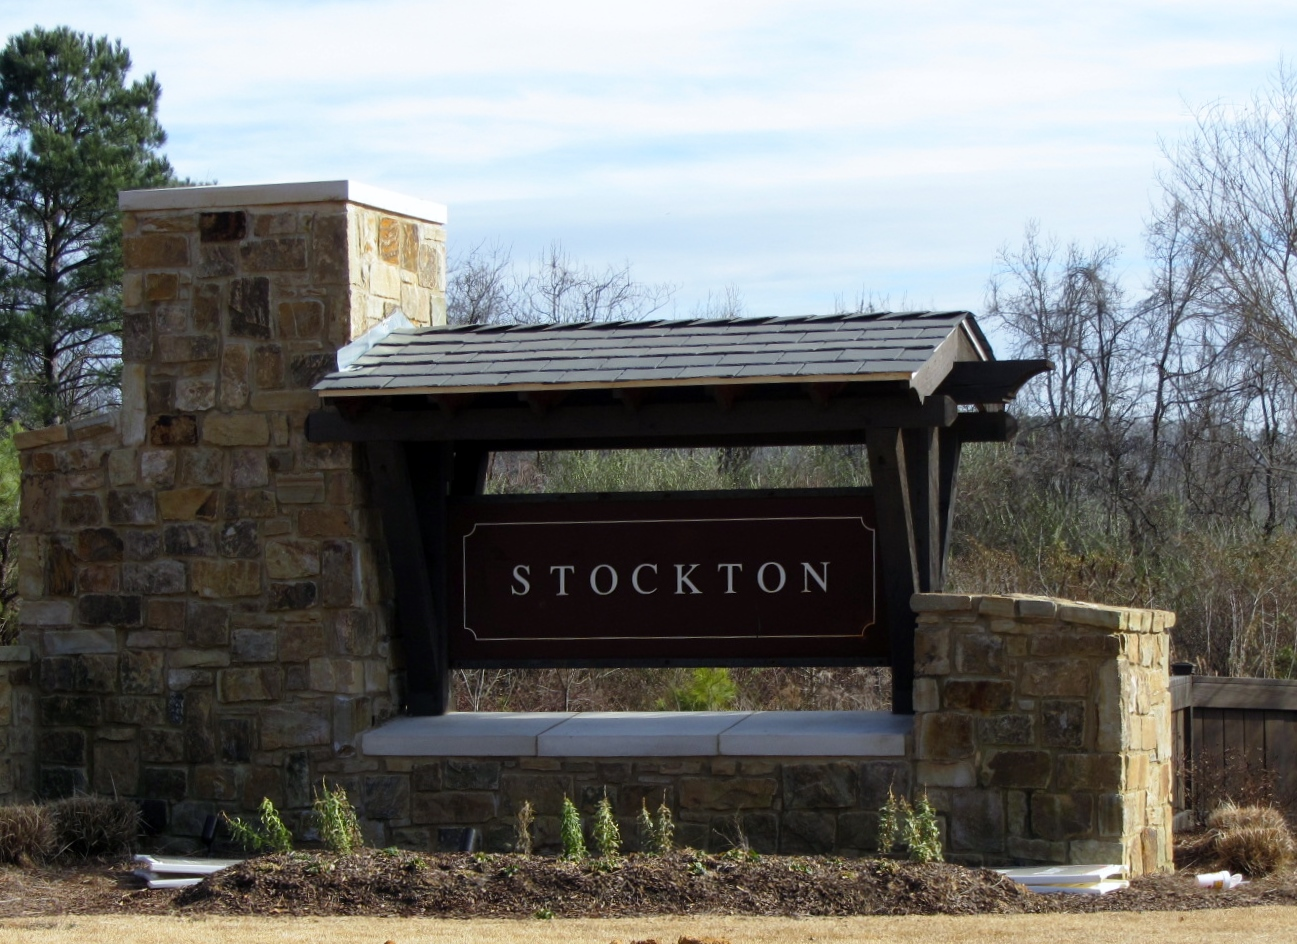 Stockton Entrance off Hwy 11